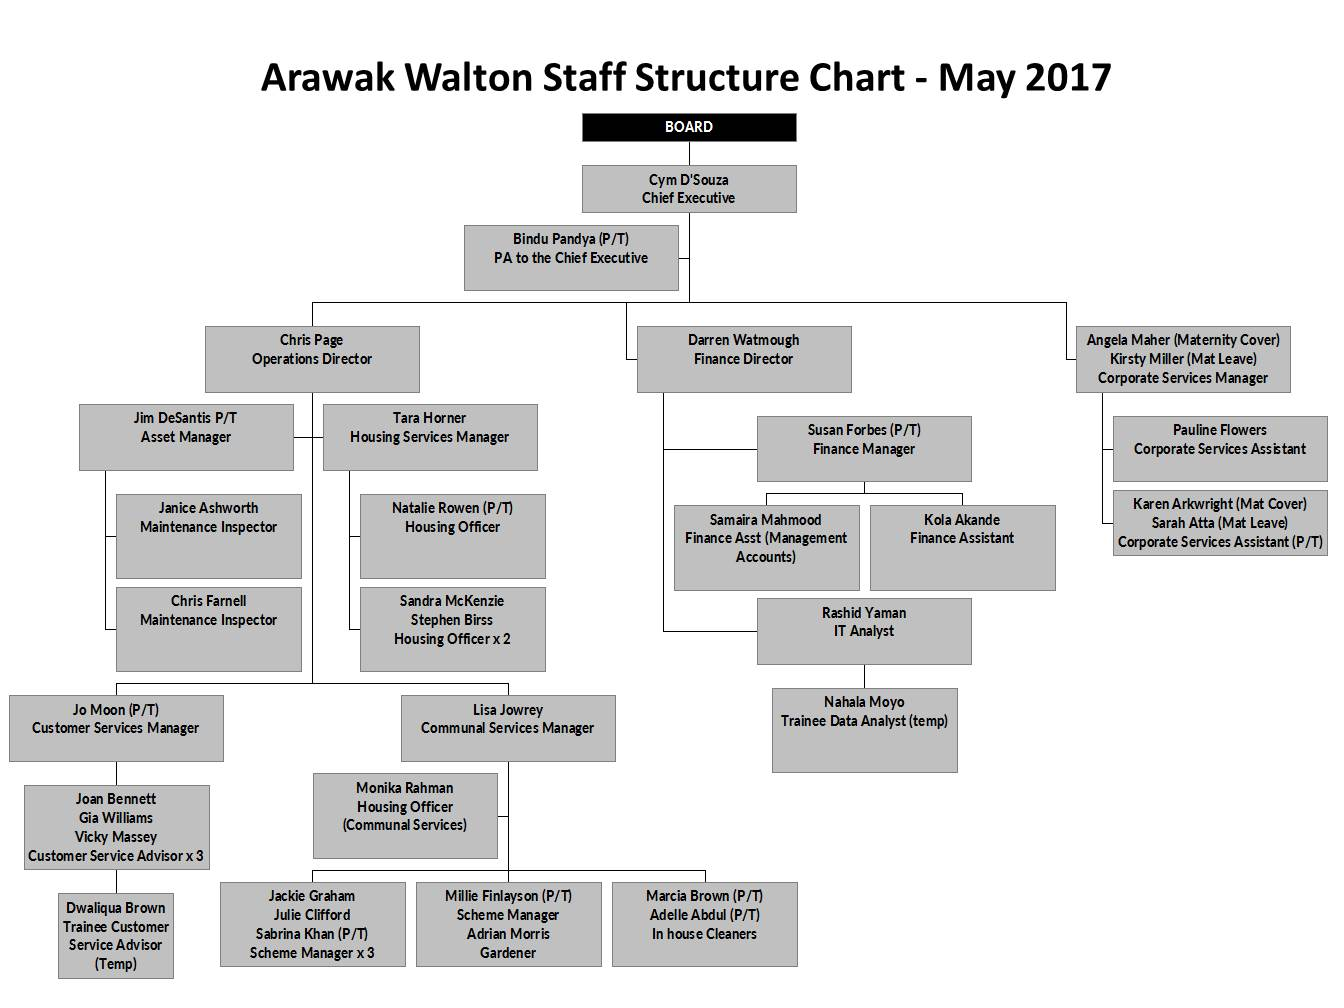 Arawak Walton Housing Association Staff Structure